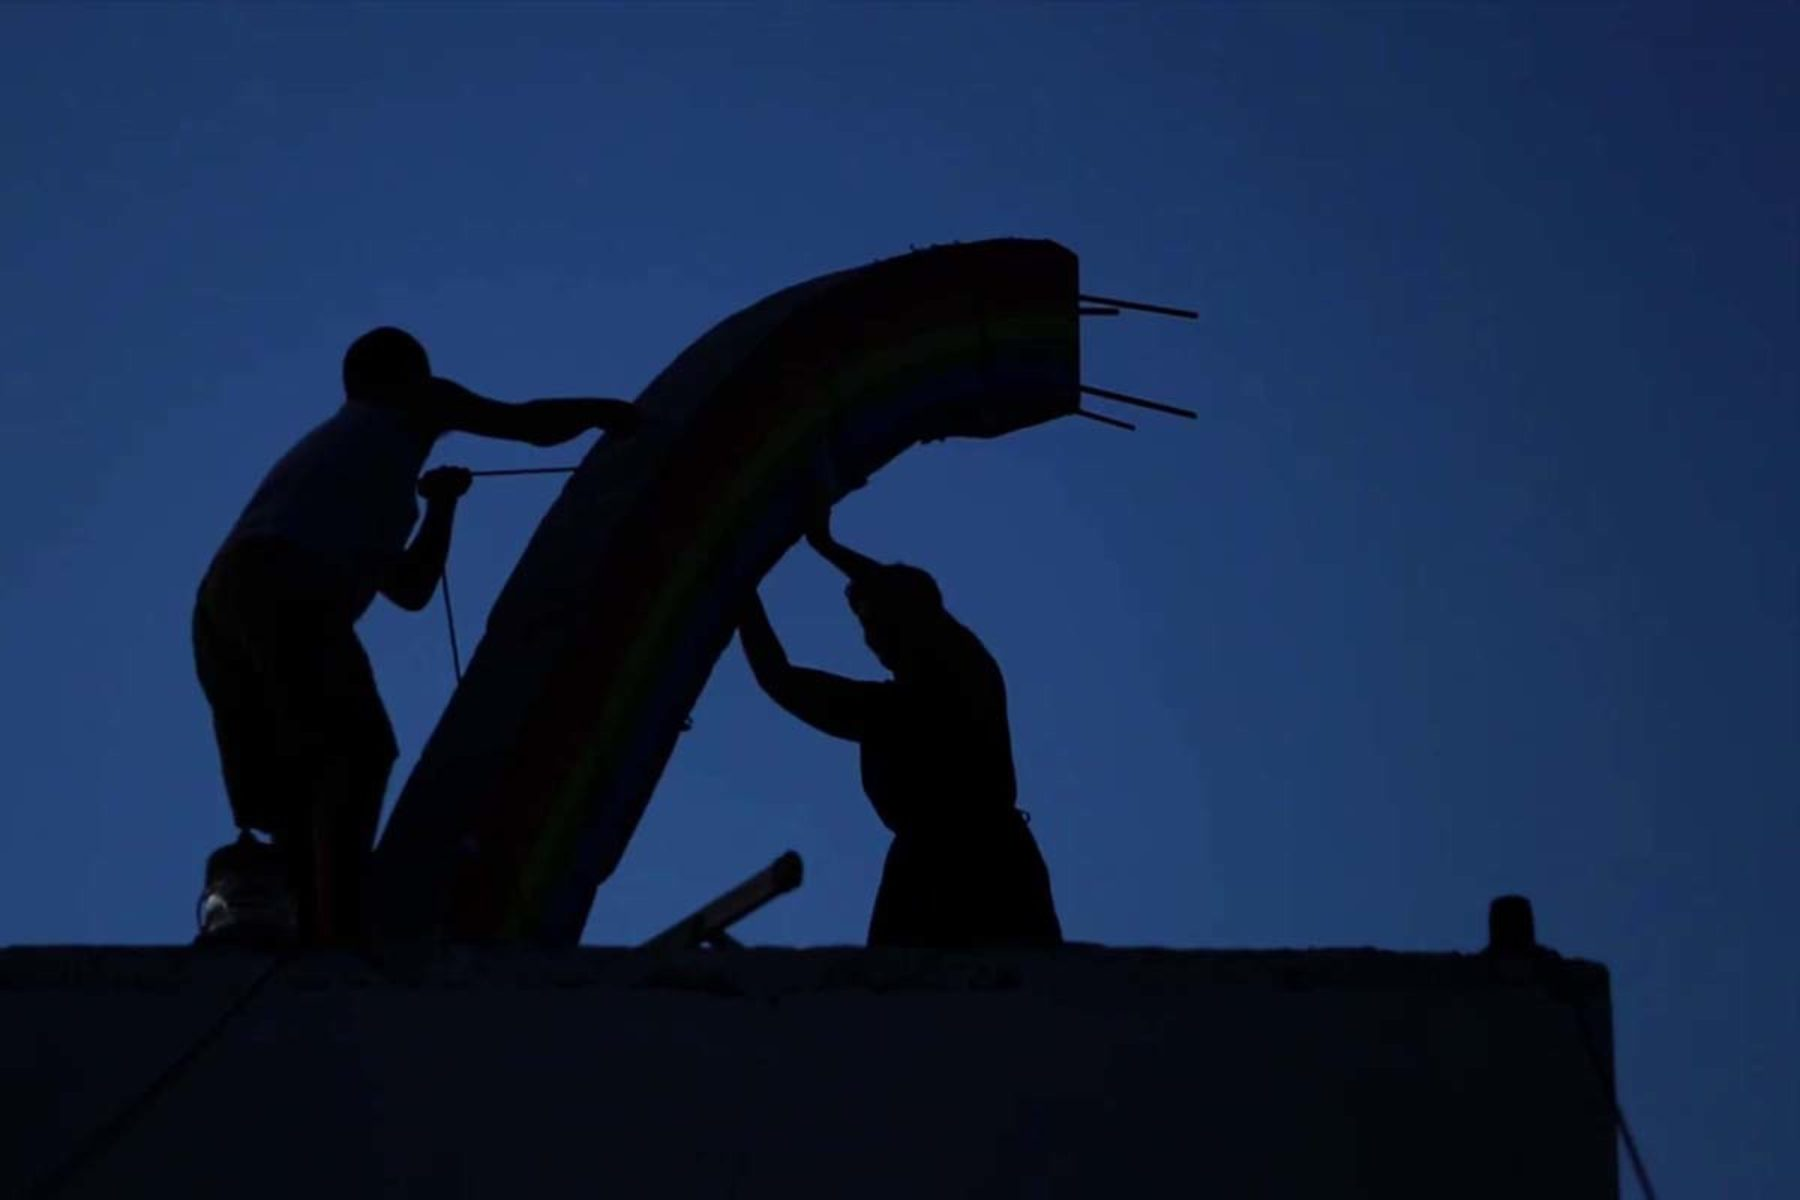 Driant Zeneli, Those who tried to put the rainbow back in the sky, 2012, video, frame 2